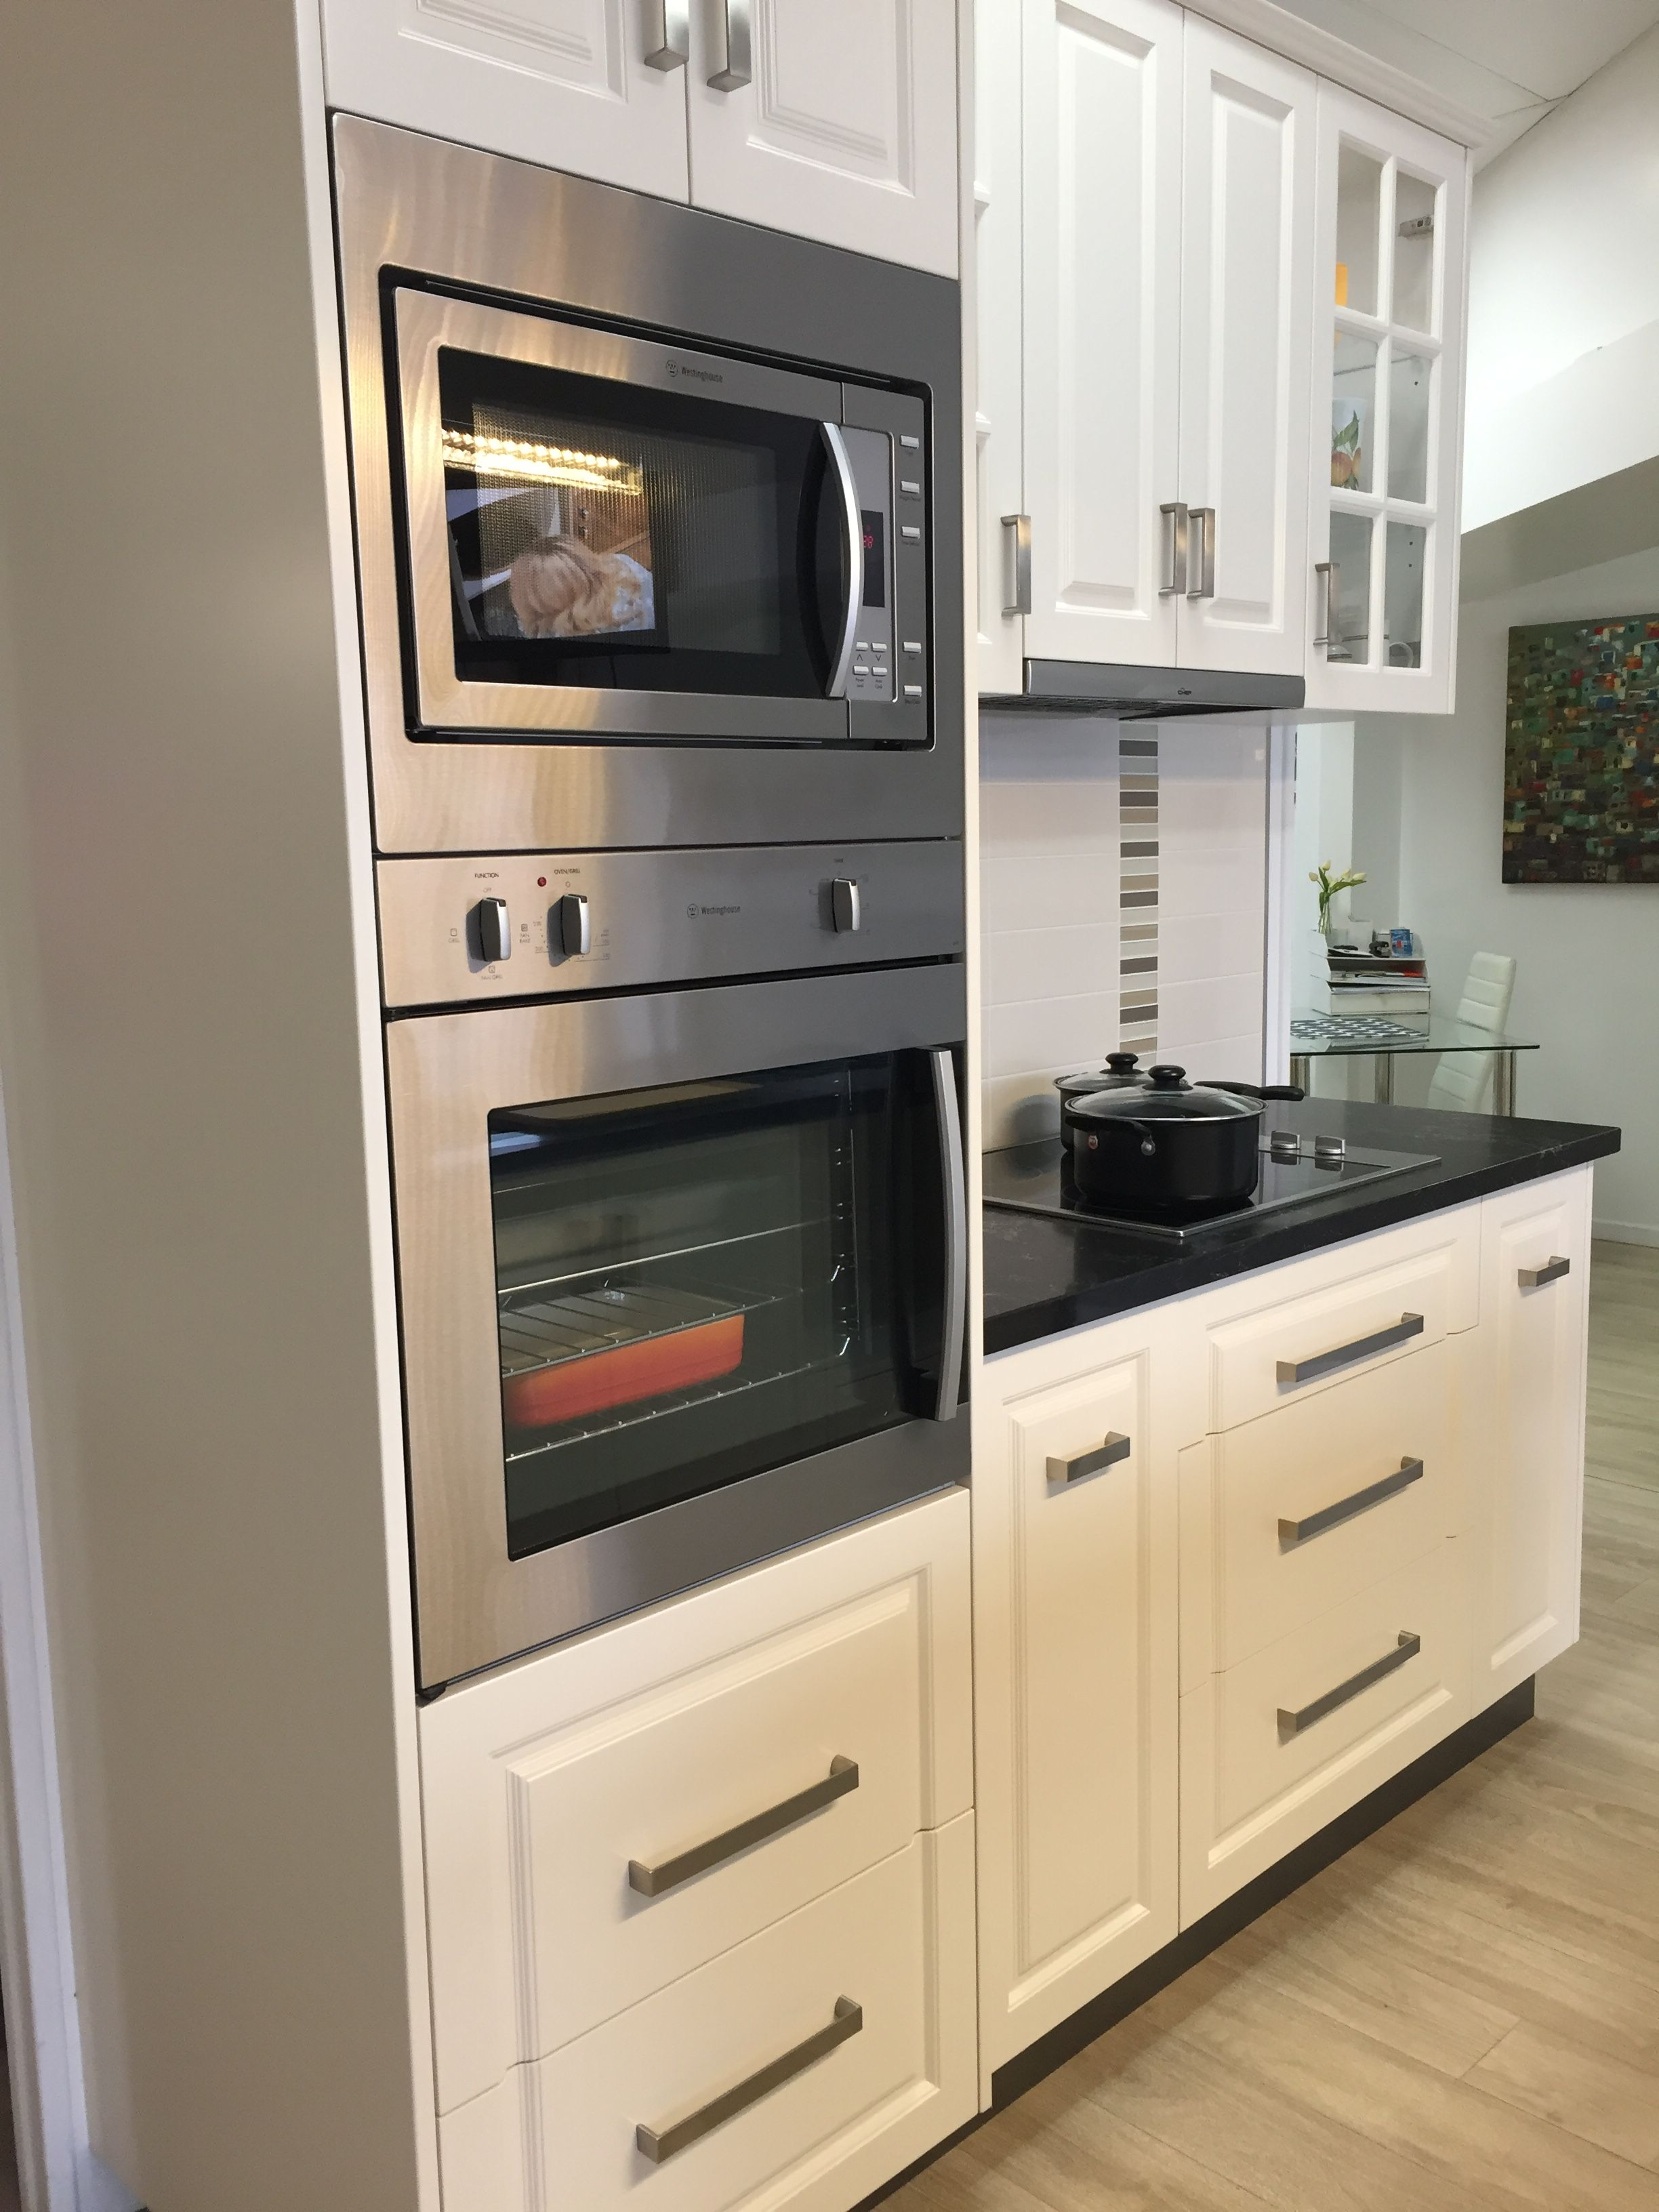 Toowoomba S Bathroom Kitchen Specialists In 2020 Wall Oven Freestanding Stove Gas Oven Repair